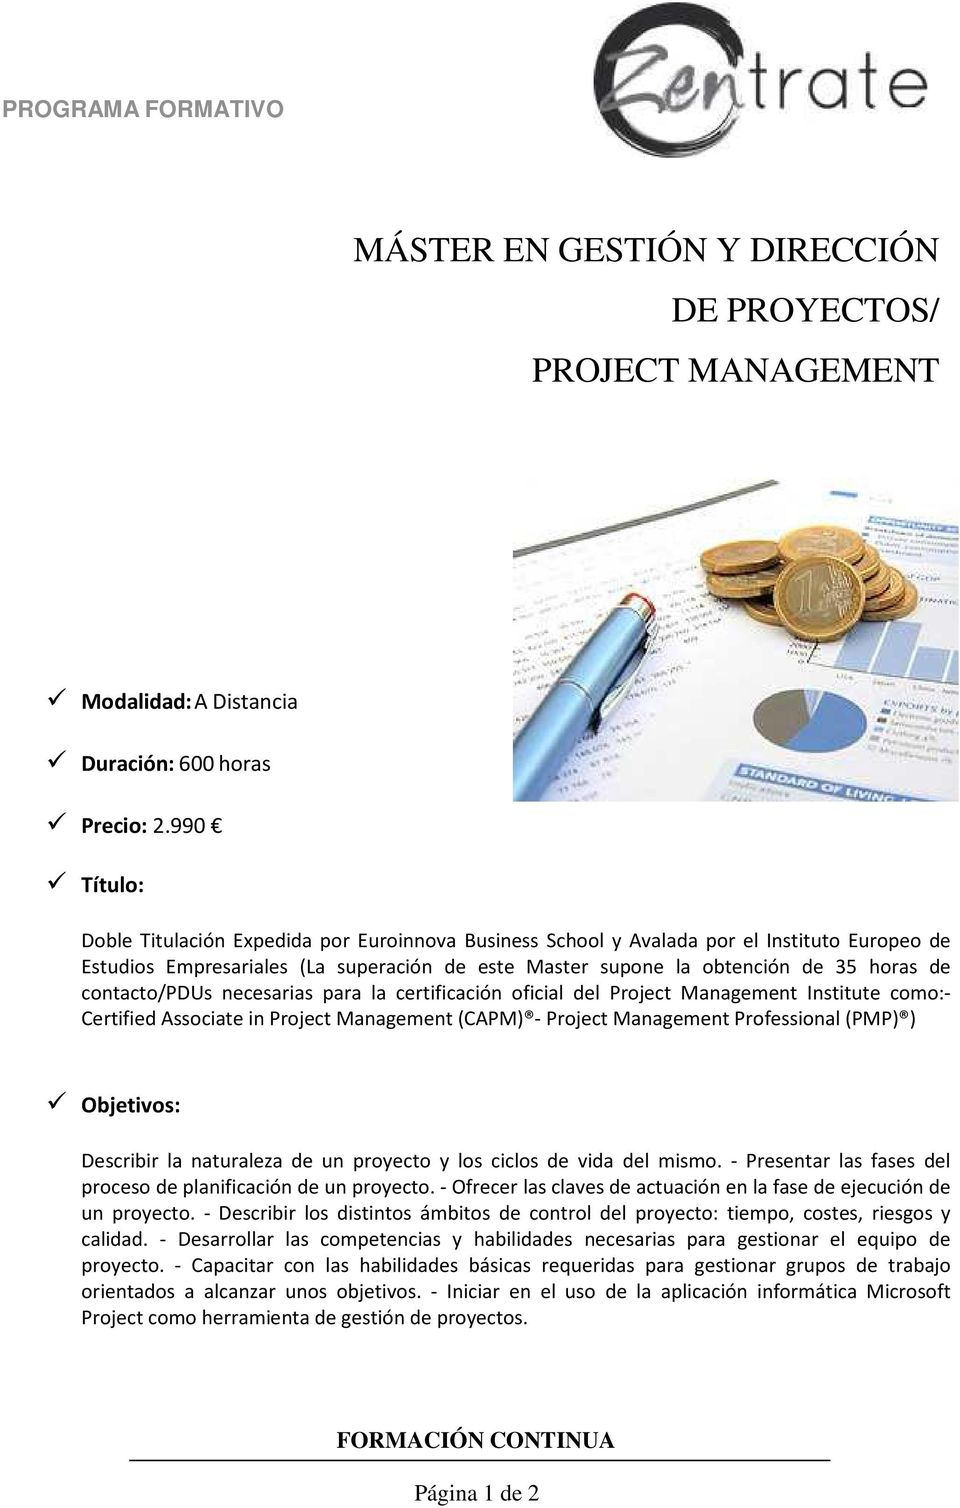 contacto/pdus necesarias para la certificación oficial del Project Management Institute como:- Certified Associate in Project Management (CAPM) - Project Management Professional (PMP) ) Objetivos: